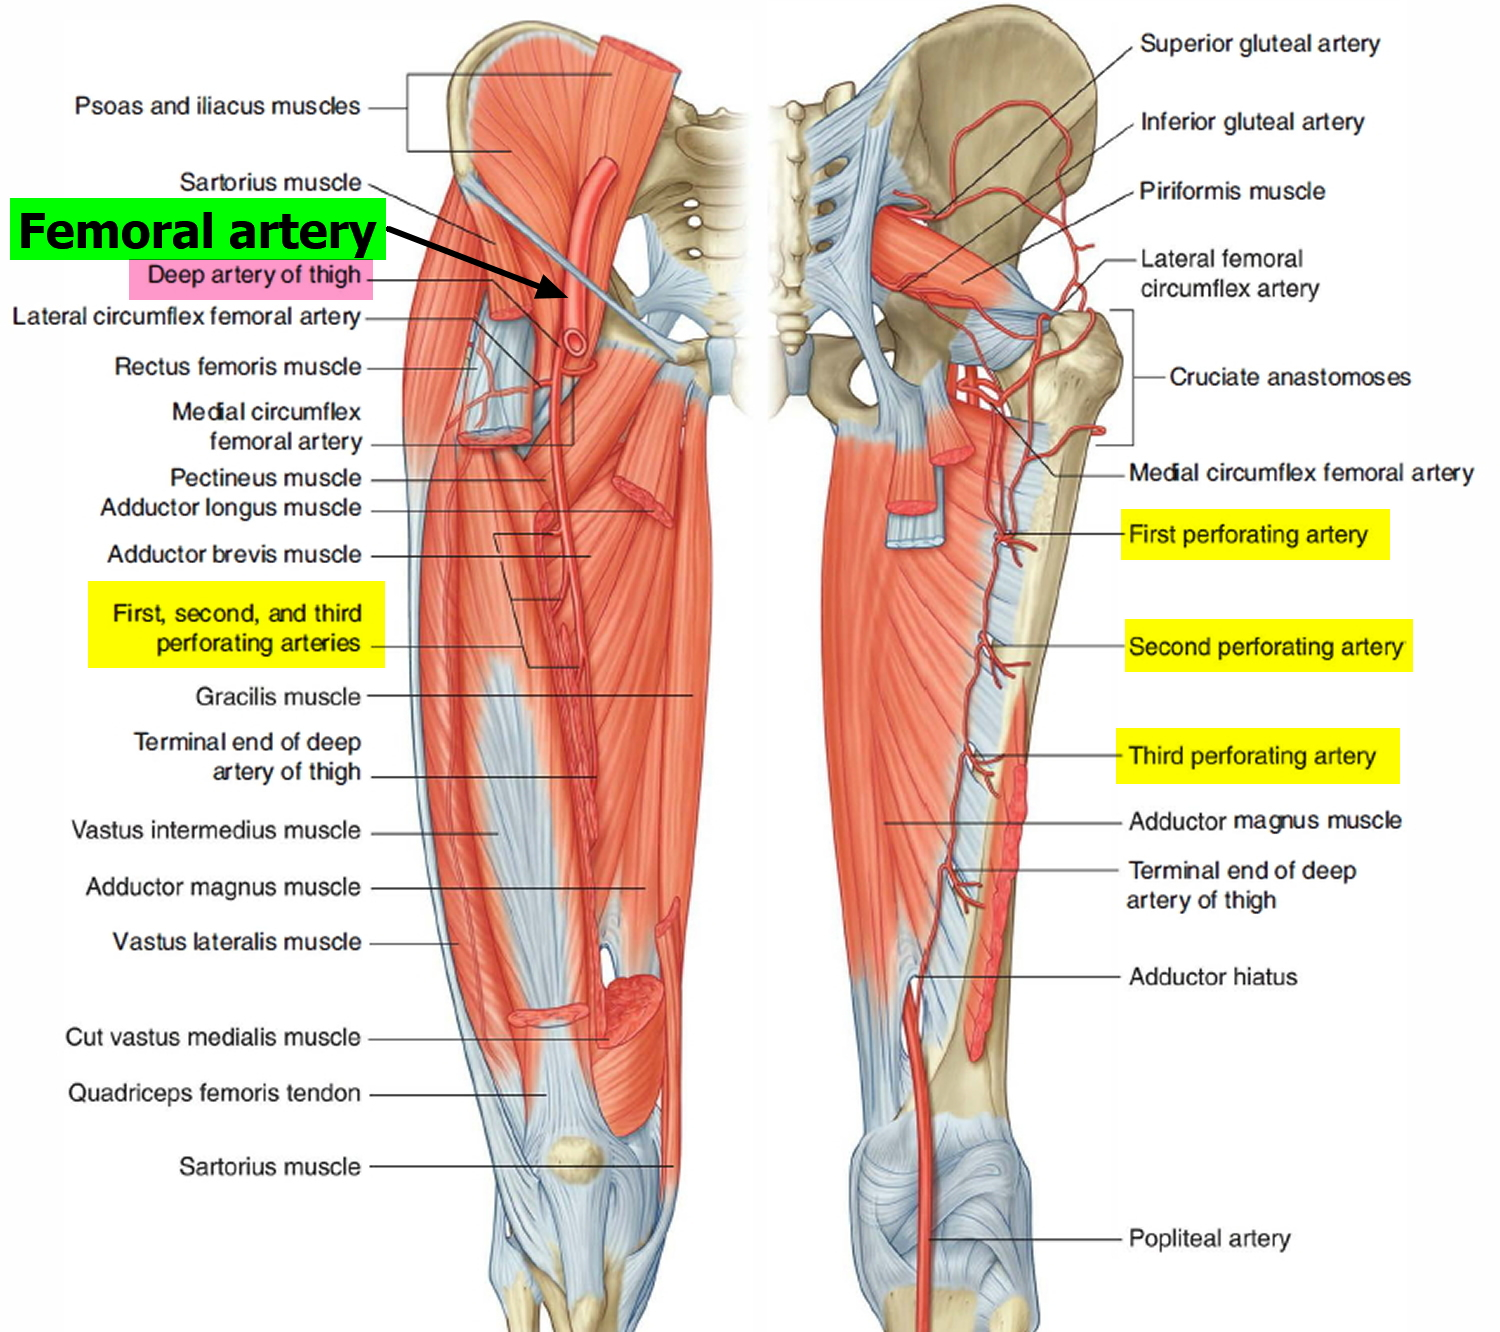 femoral artery and deep artery of the thigh